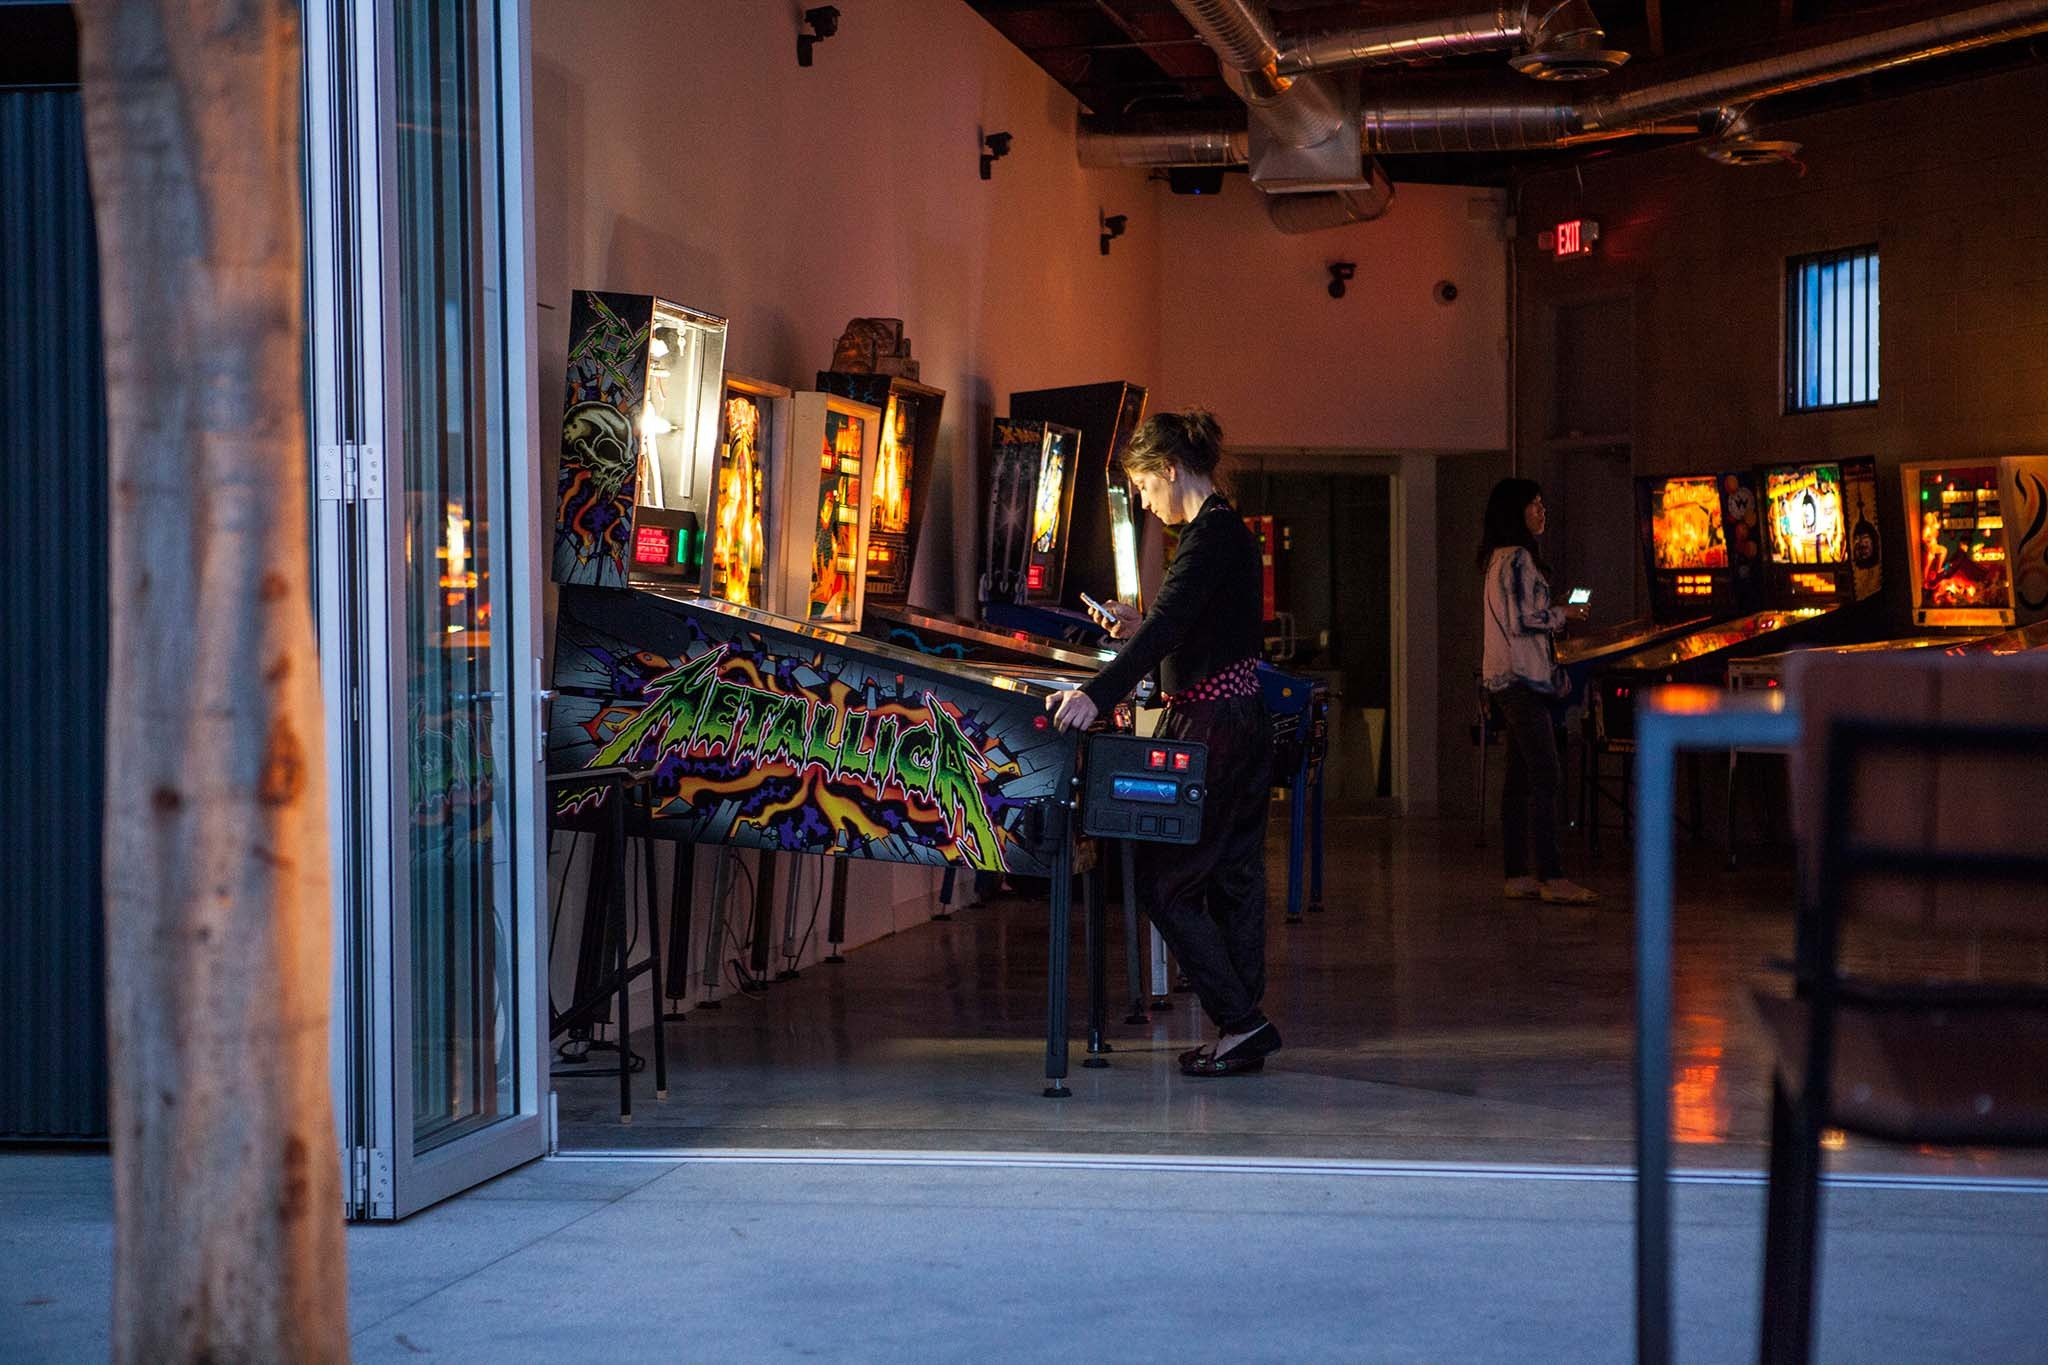 Have some fun at an arcade bar